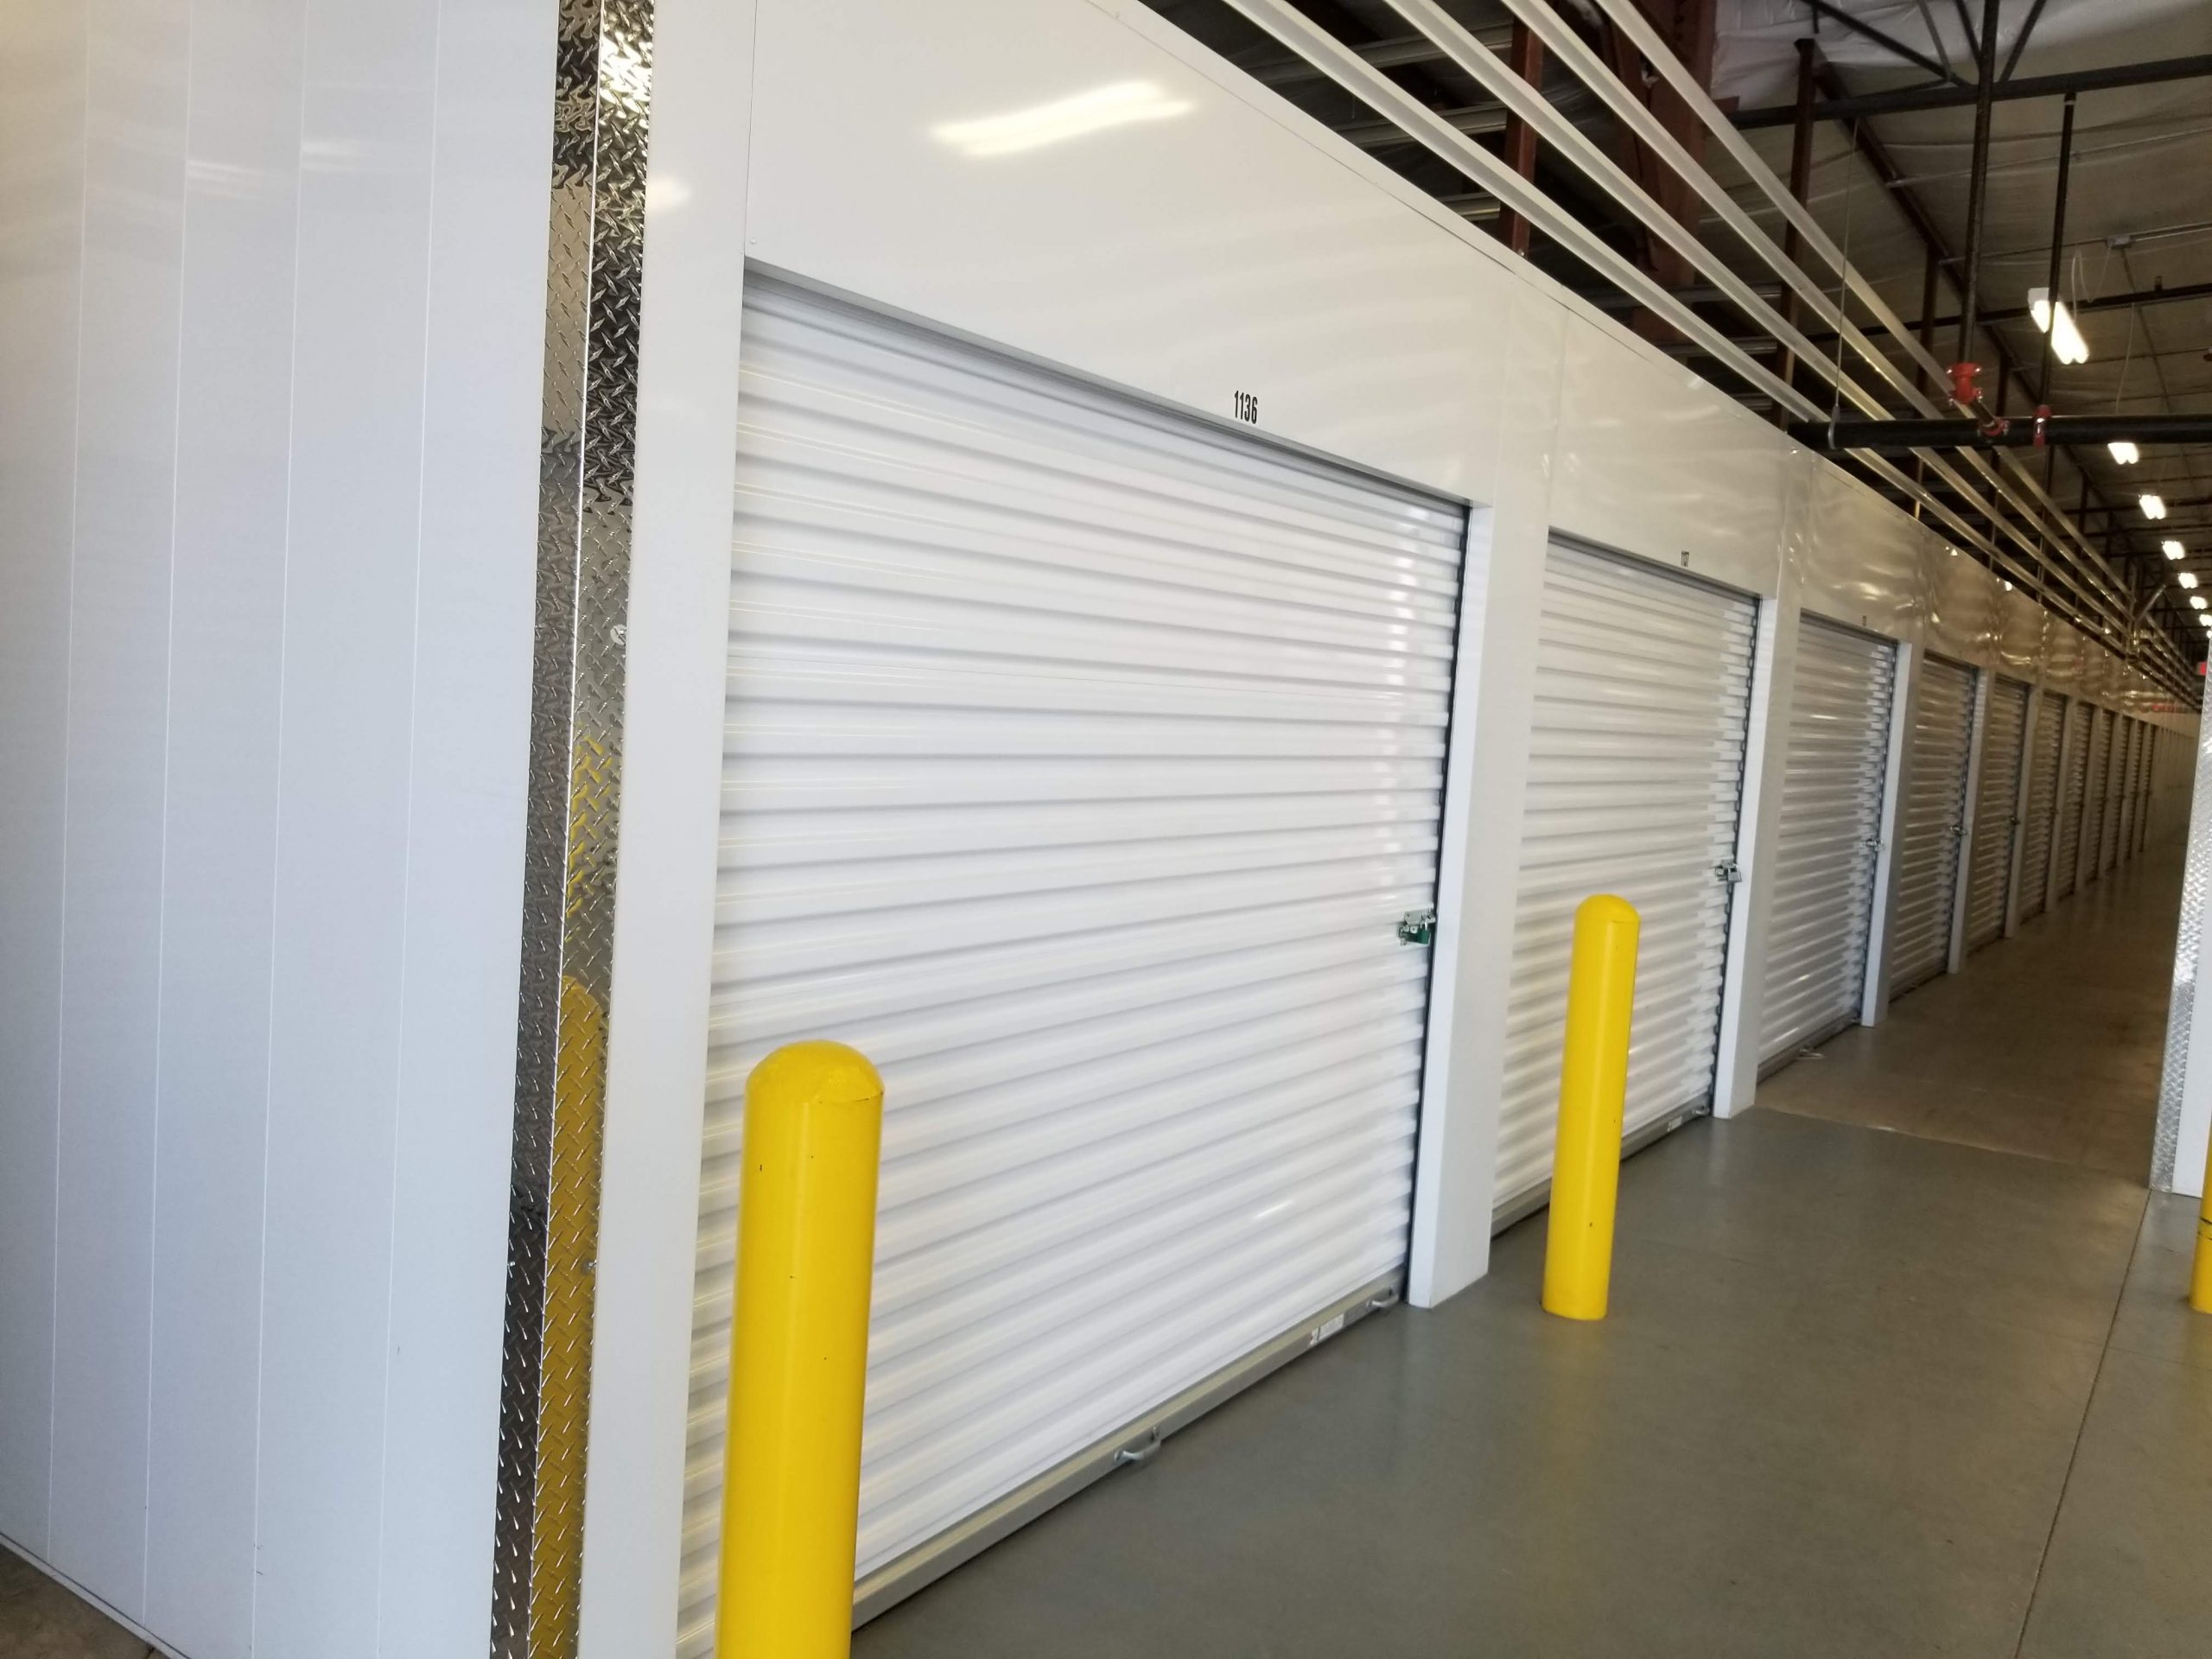 How durable are the galvanized garage door springs?